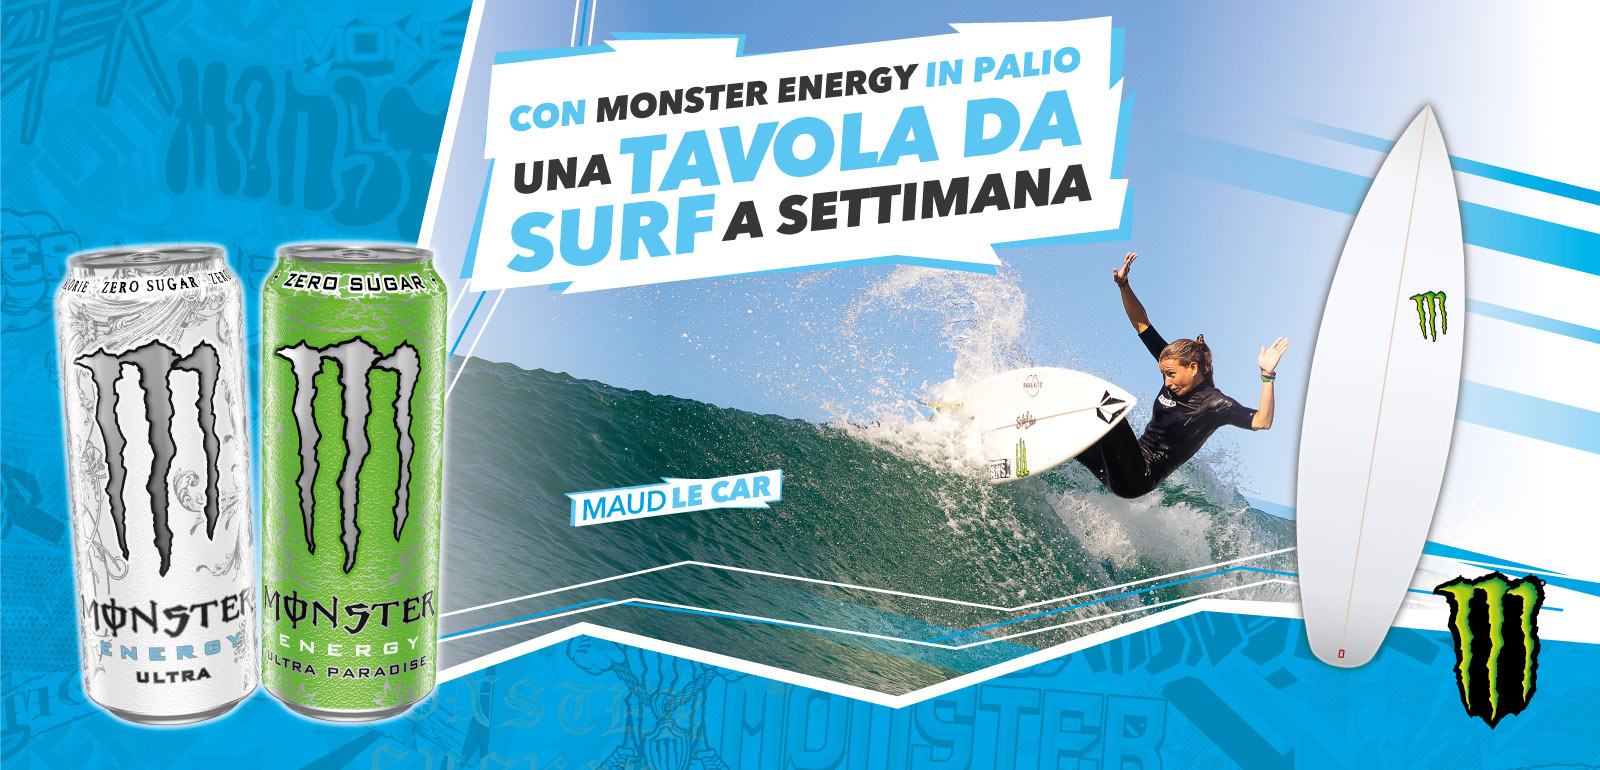 Vinci la tavola da surf con monster